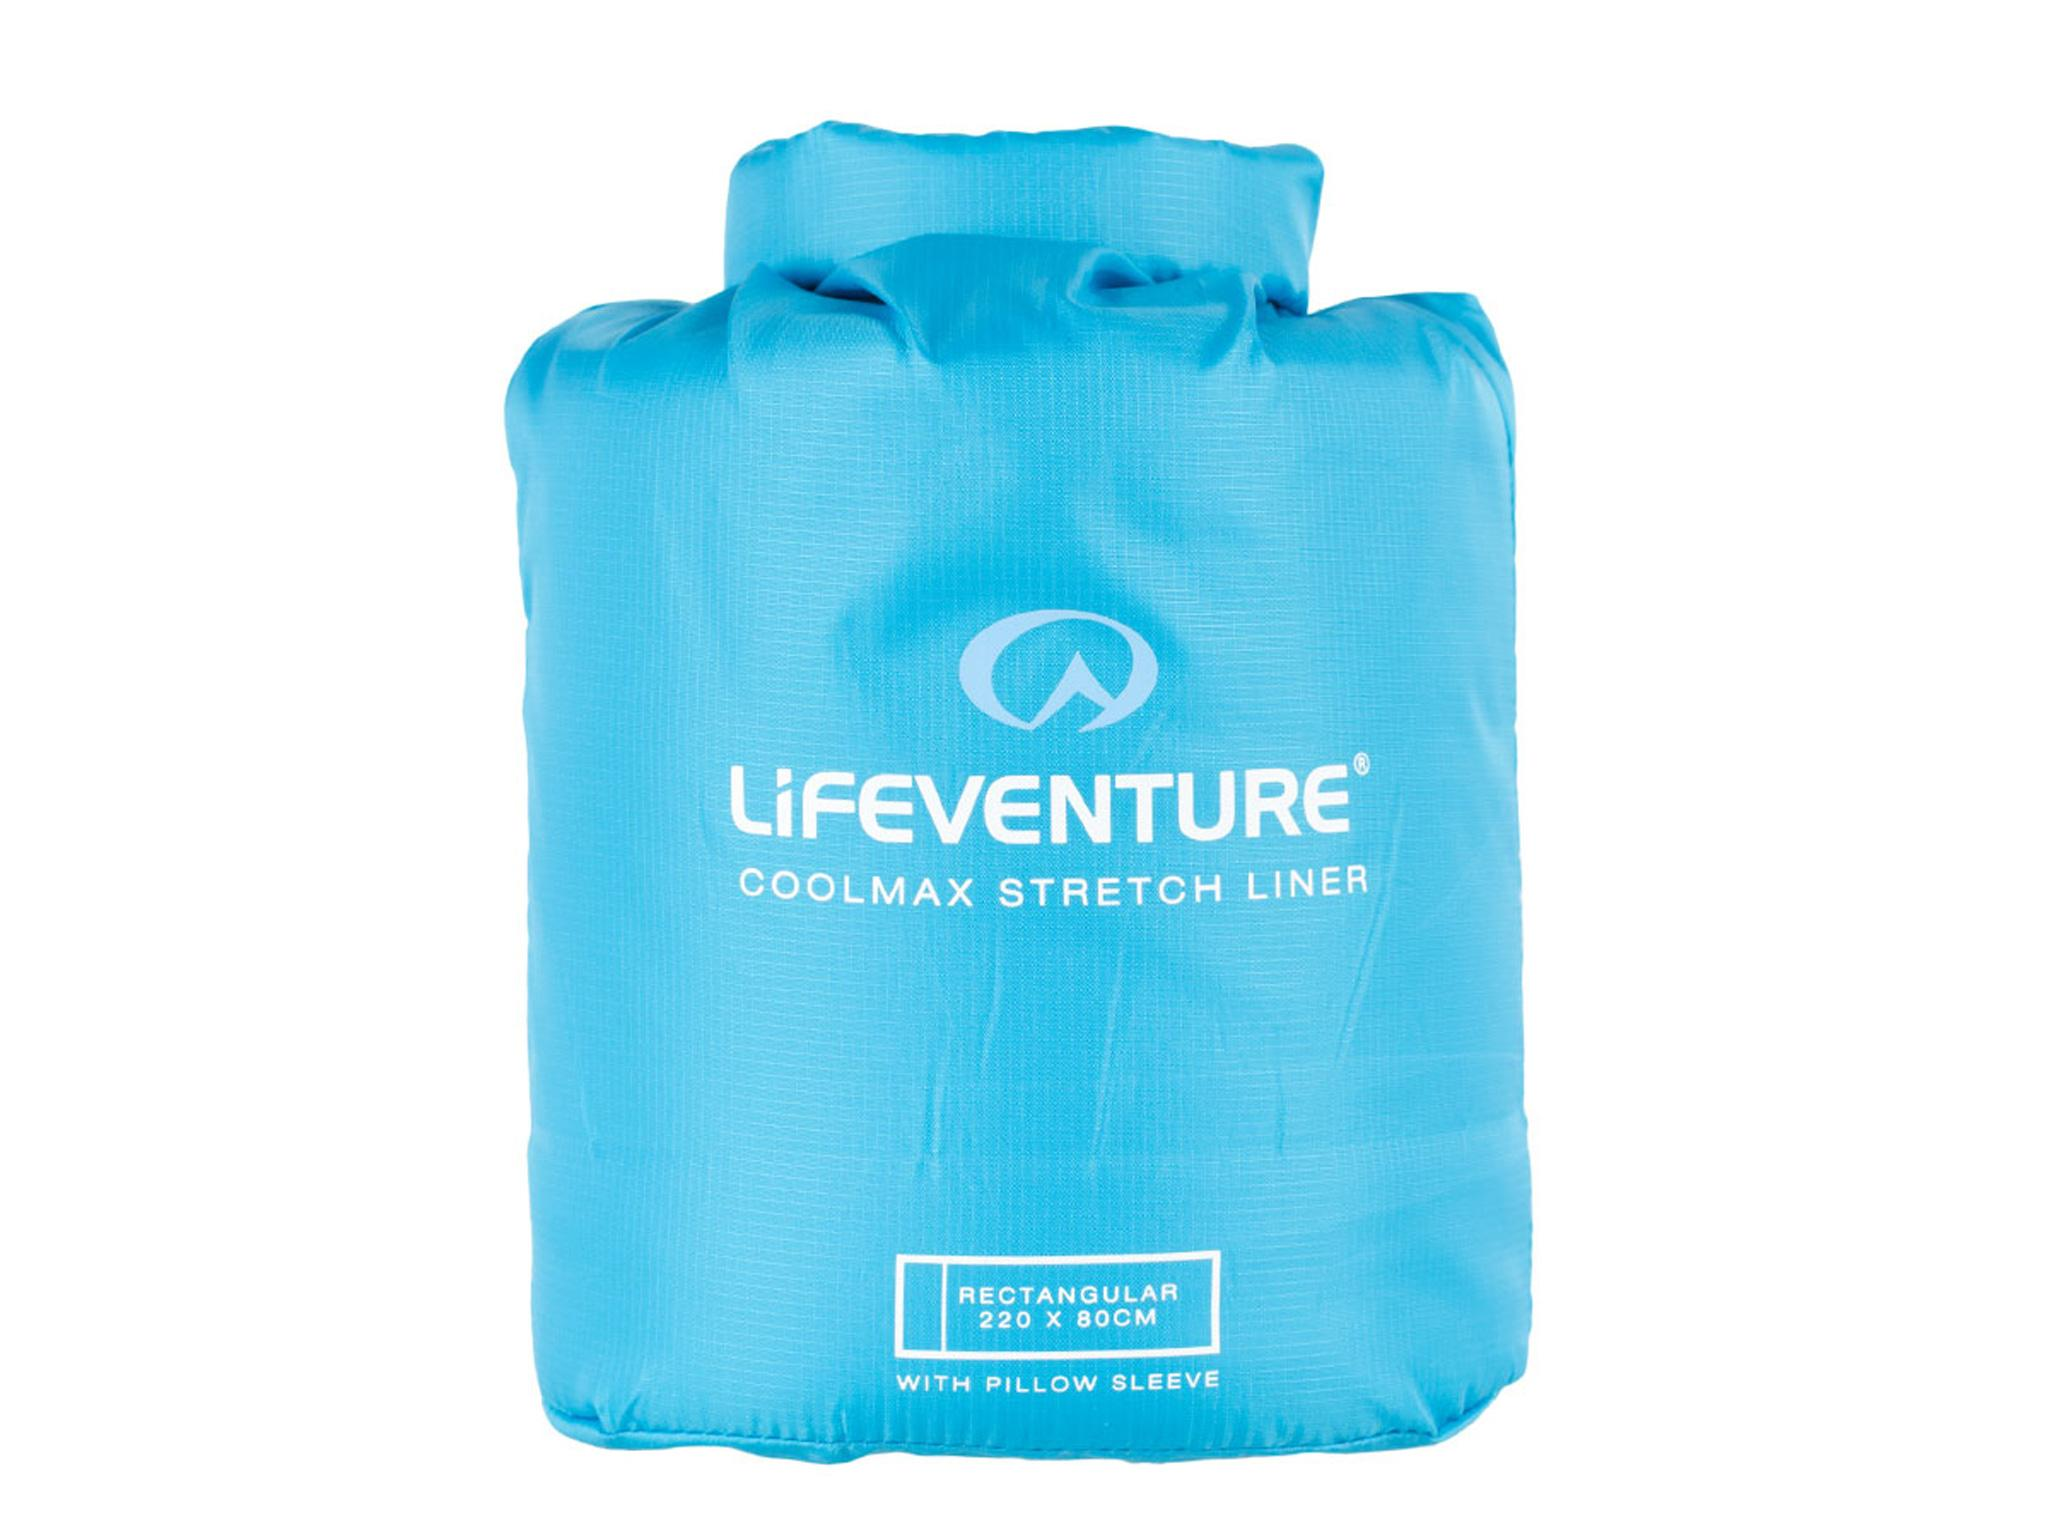 ed3c3dbbd1e Lifeventure Coolmax Sleeping Bag Liner  £36.99, Cotswold Outdoors